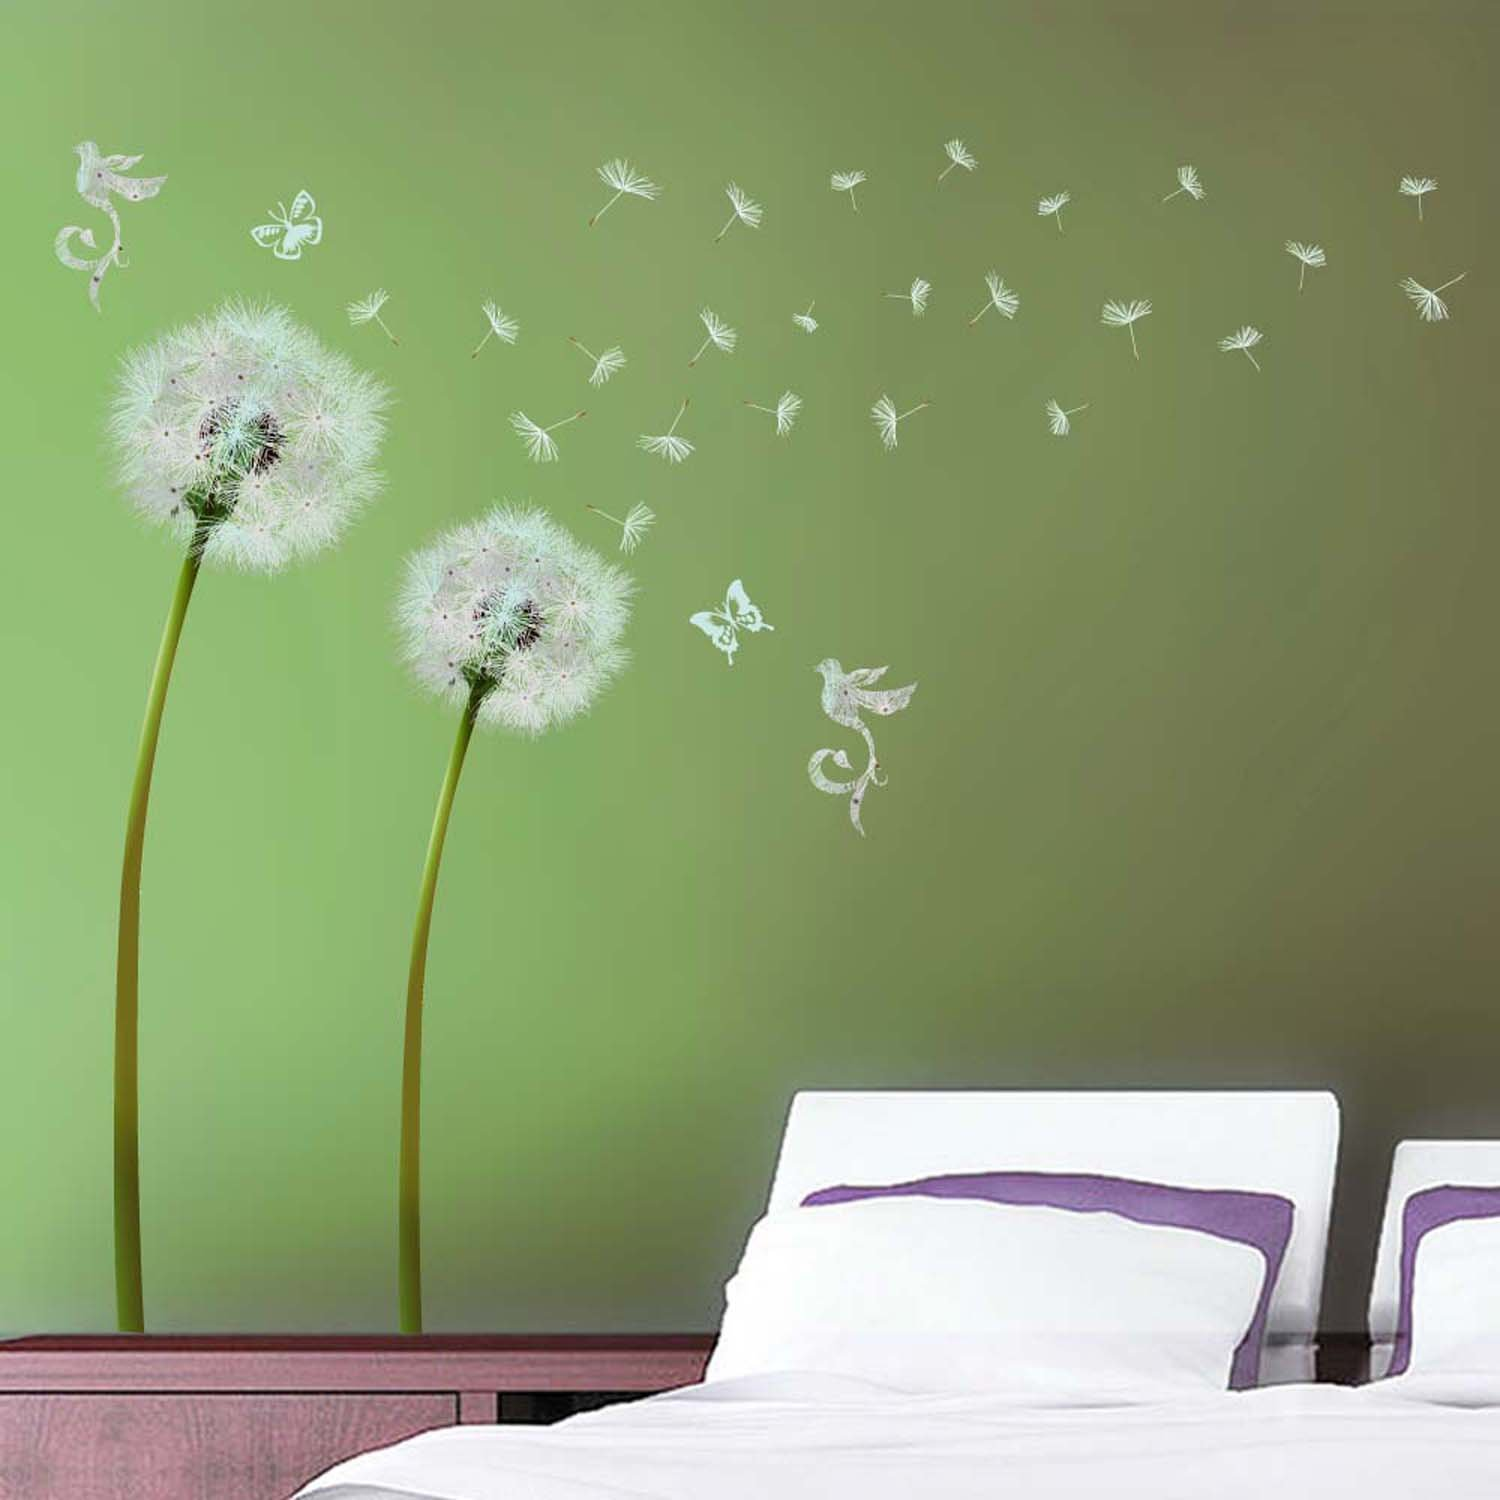 Amazon walplus wall stickers white dandelion removable self amazon walplus wall stickers white dandelion removable self adhesive mural art decals vinyl home decoration diy living bedroom office dcor wallpaper amipublicfo Images